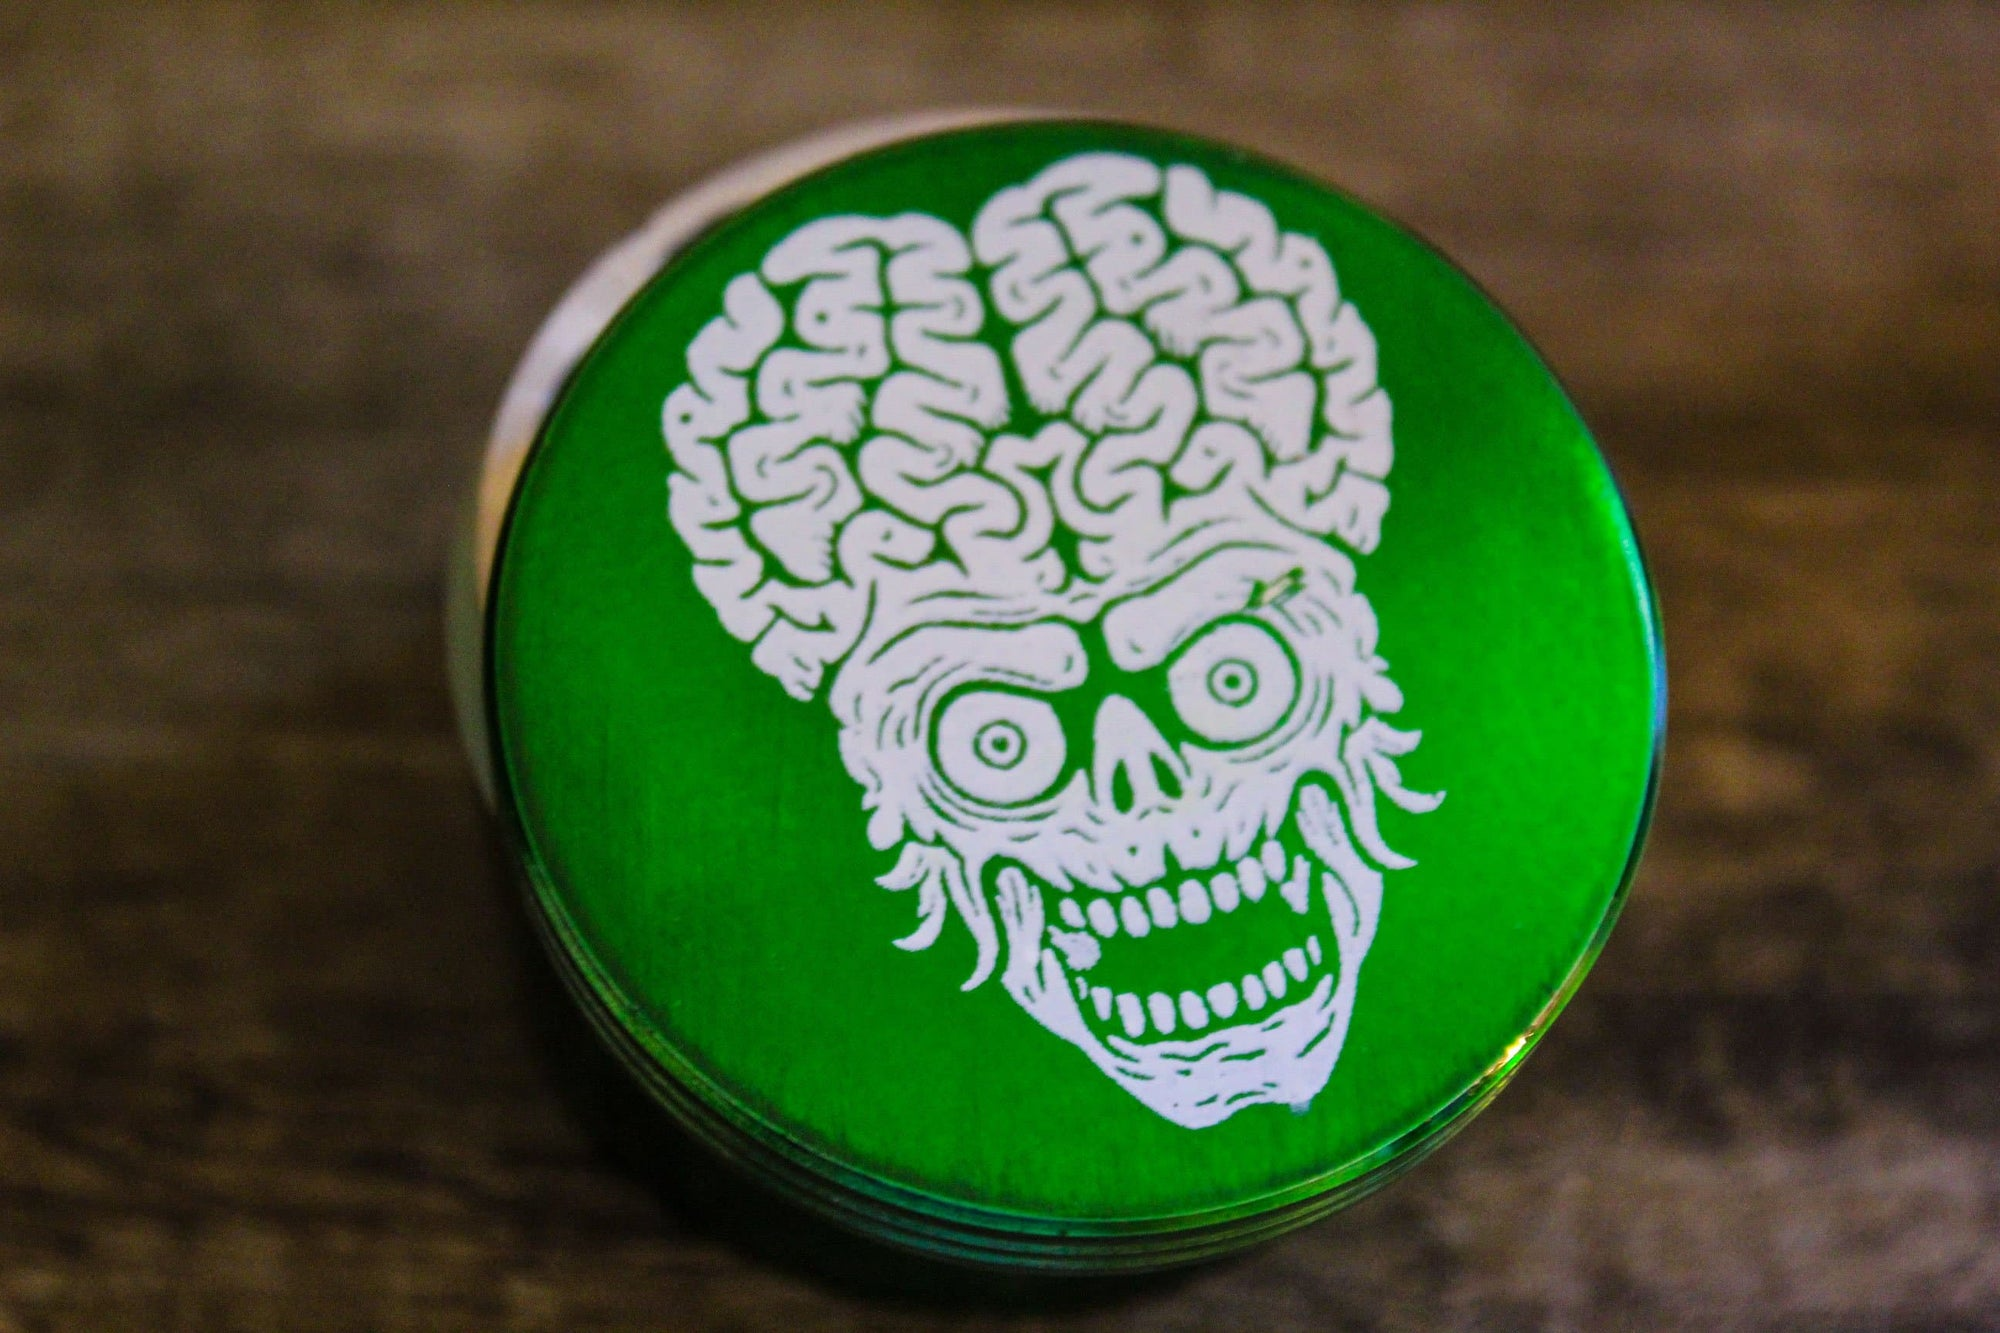 Mars Attacks! Grinder